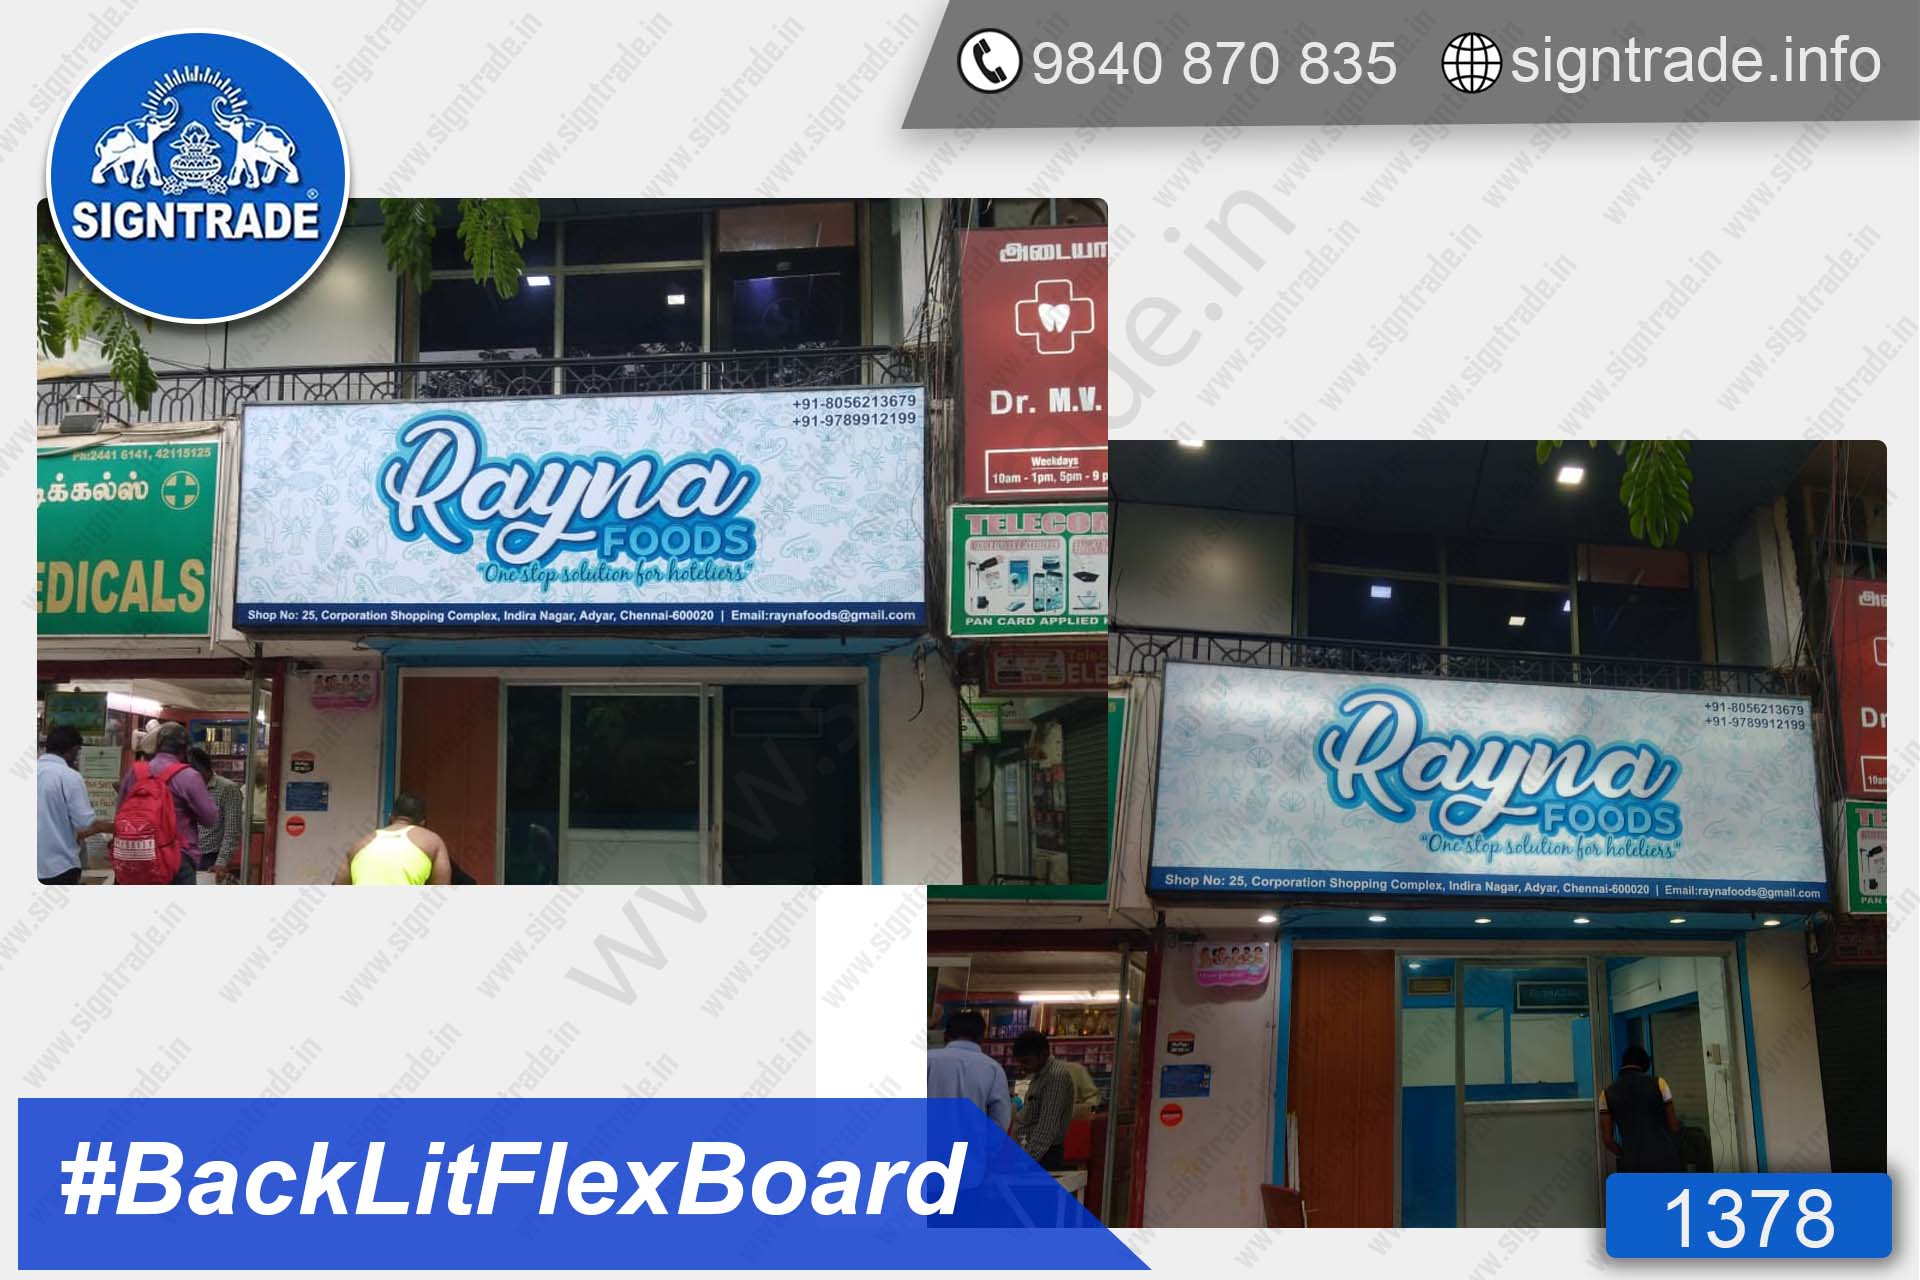 Rayna Foods - Chennai - SIGNTRADE - Backlit Flex Board - Digital Printing Services in Chennai